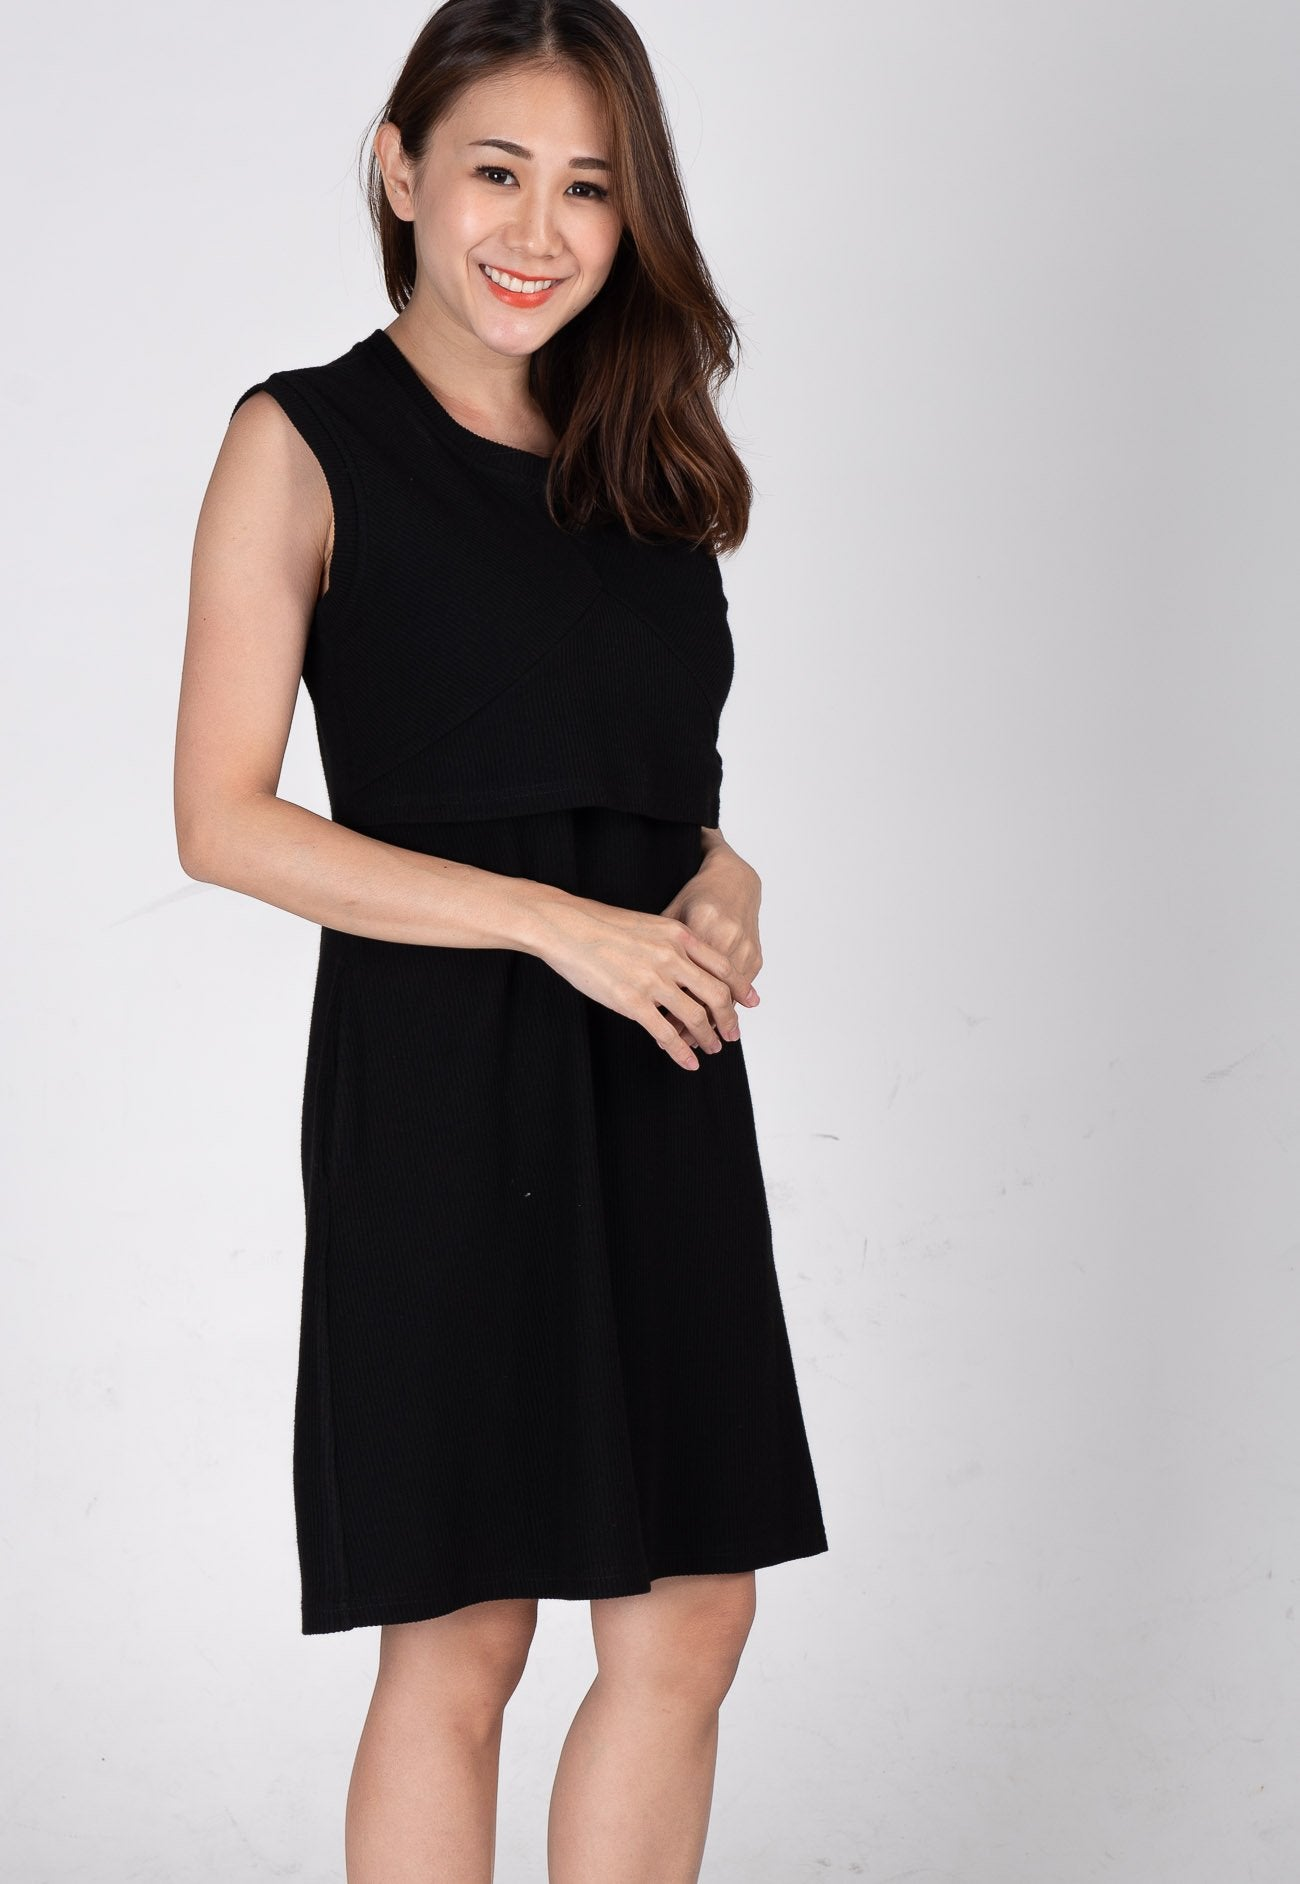 Mothercot Cassiel Knit Nursing Dress in Black  by JumpEatCry - Maternity and nursing wear